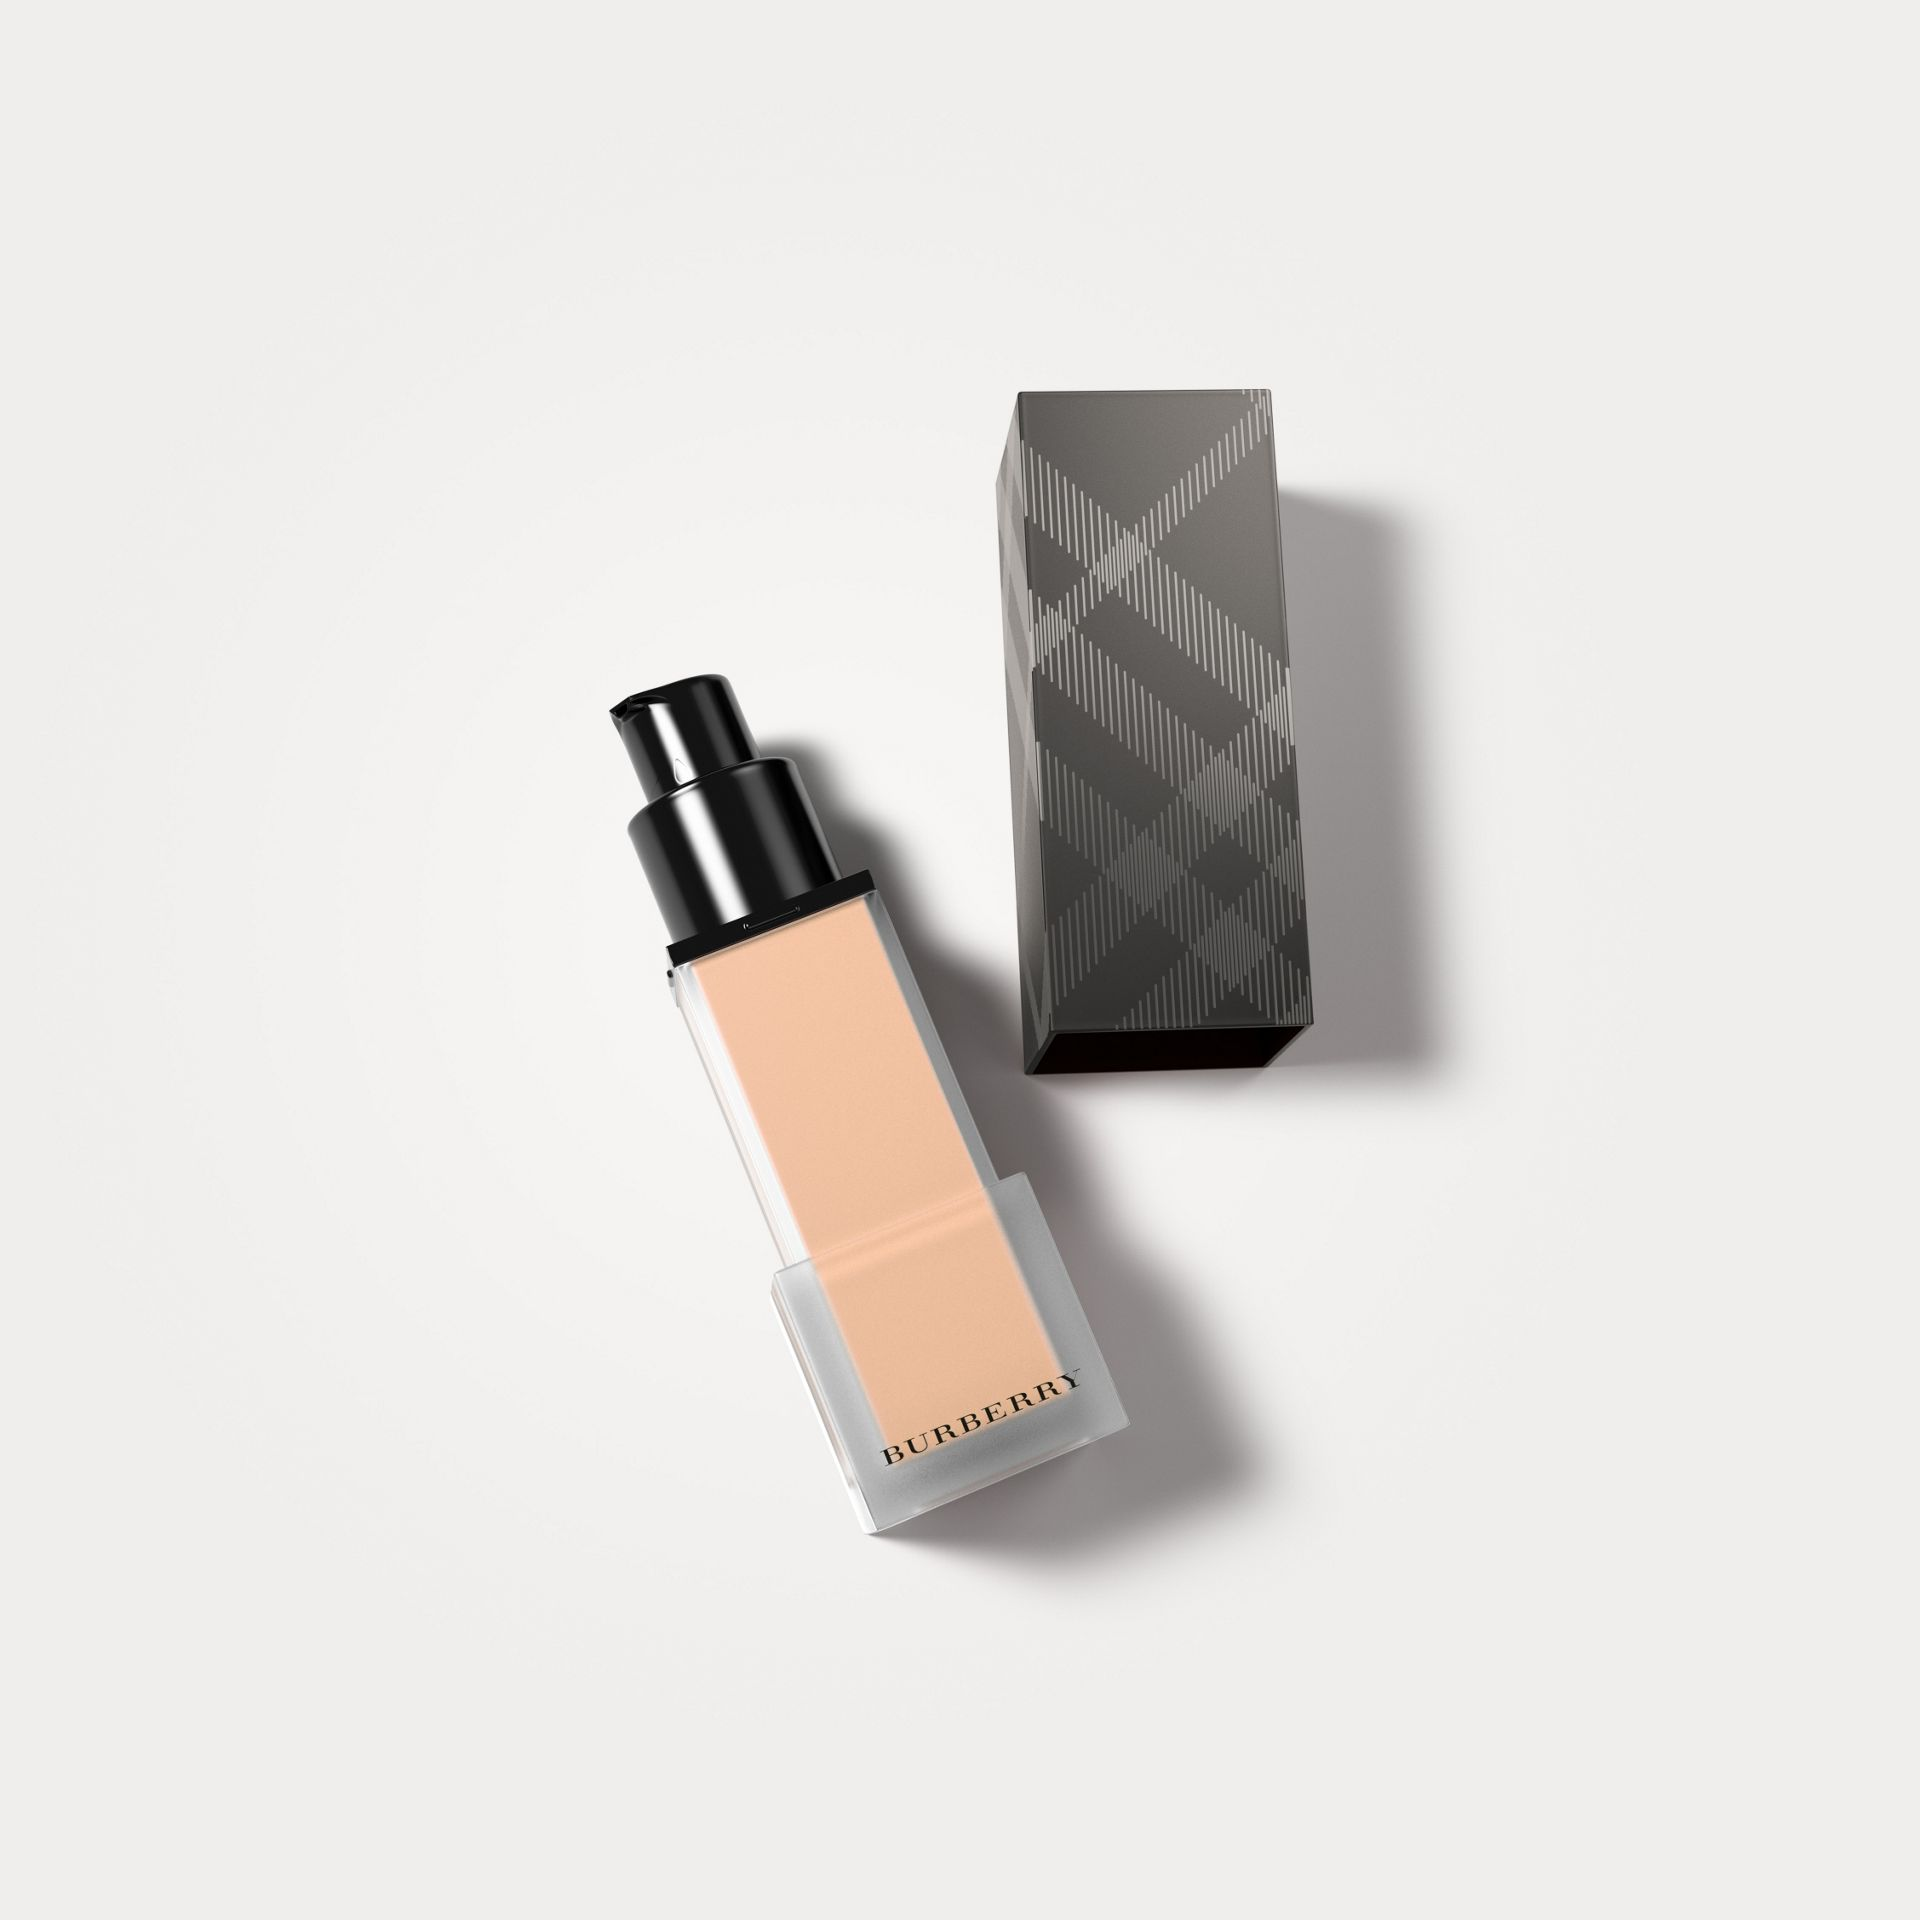 Warm nude 34 Burberry Cashmere SPF 20 – Warm Nude No.34 - gallery image 1